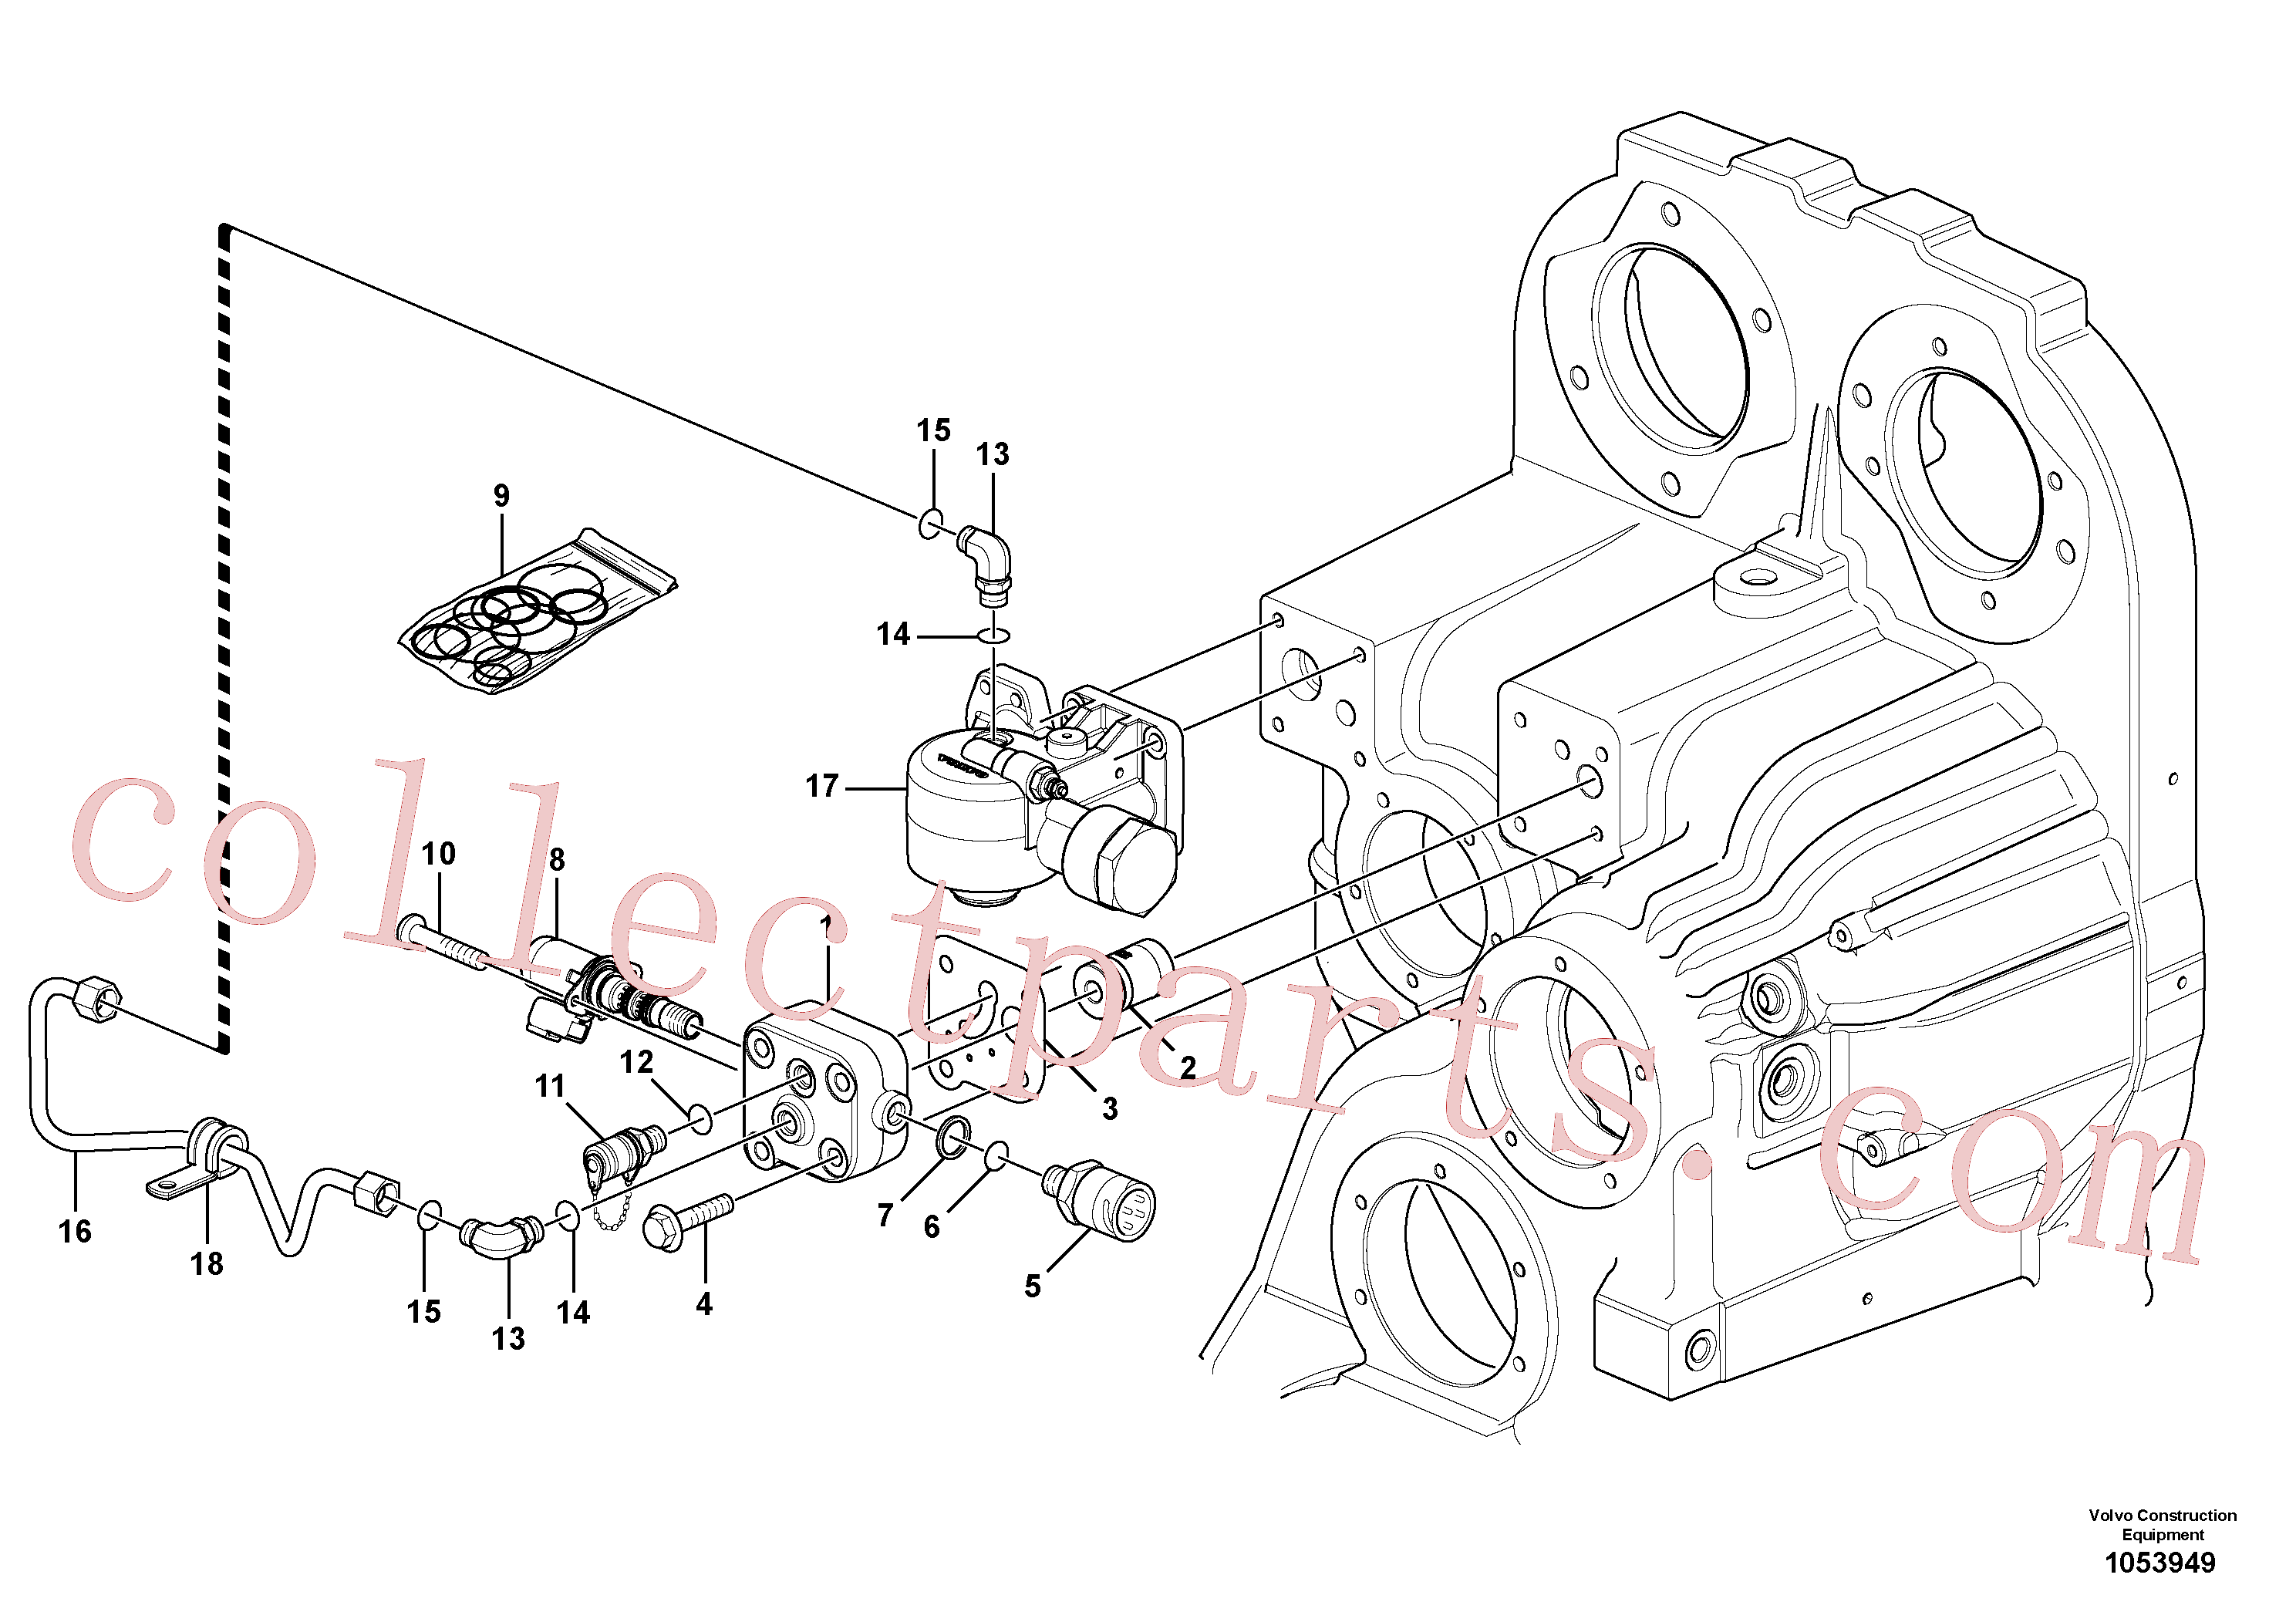 VOE15190639 for Volvo Proportionalvalve(1053949 assembly)